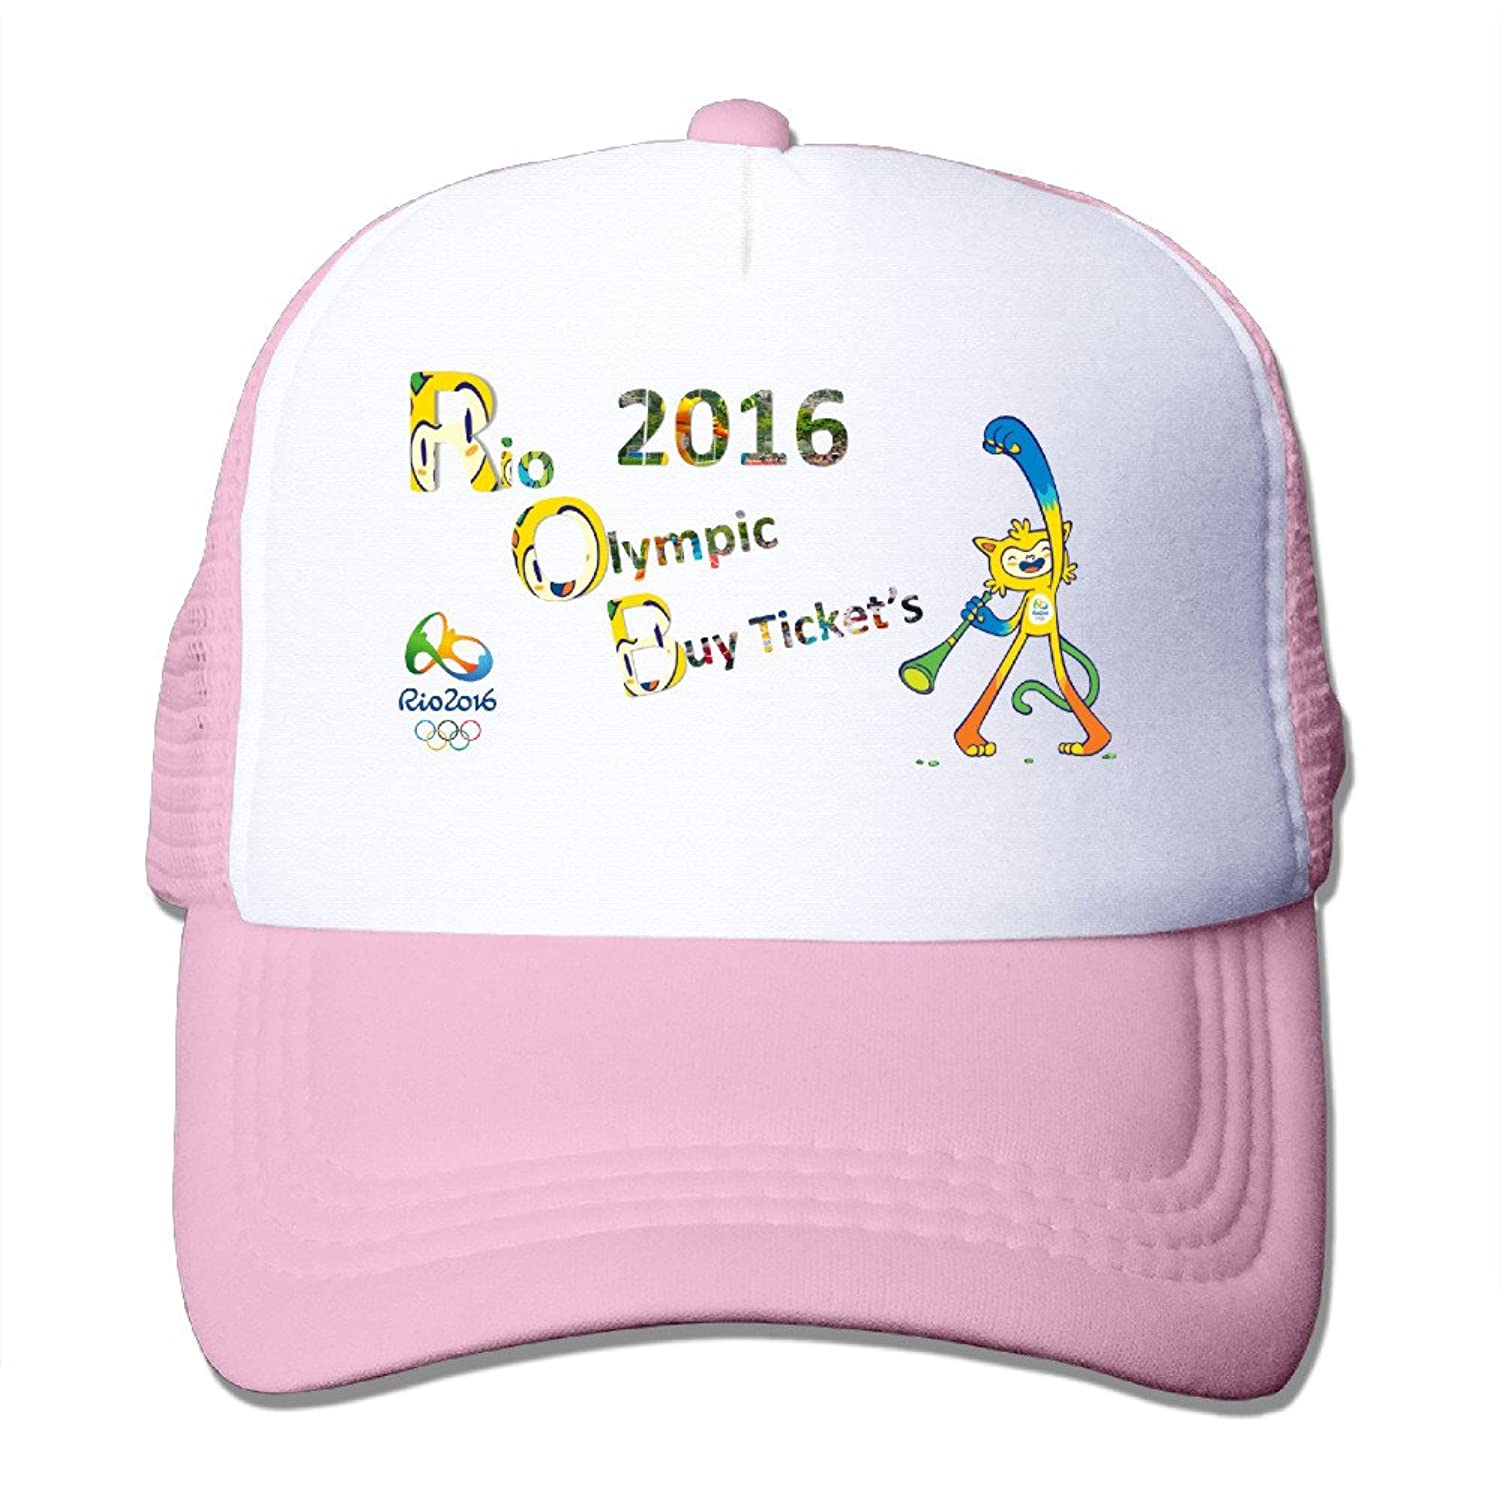 Funny Sayings Rio2016 Mascots Adult Nylon Adjustable Mesh Hat Mesh Hats RoyalBlue One Size Fits Most